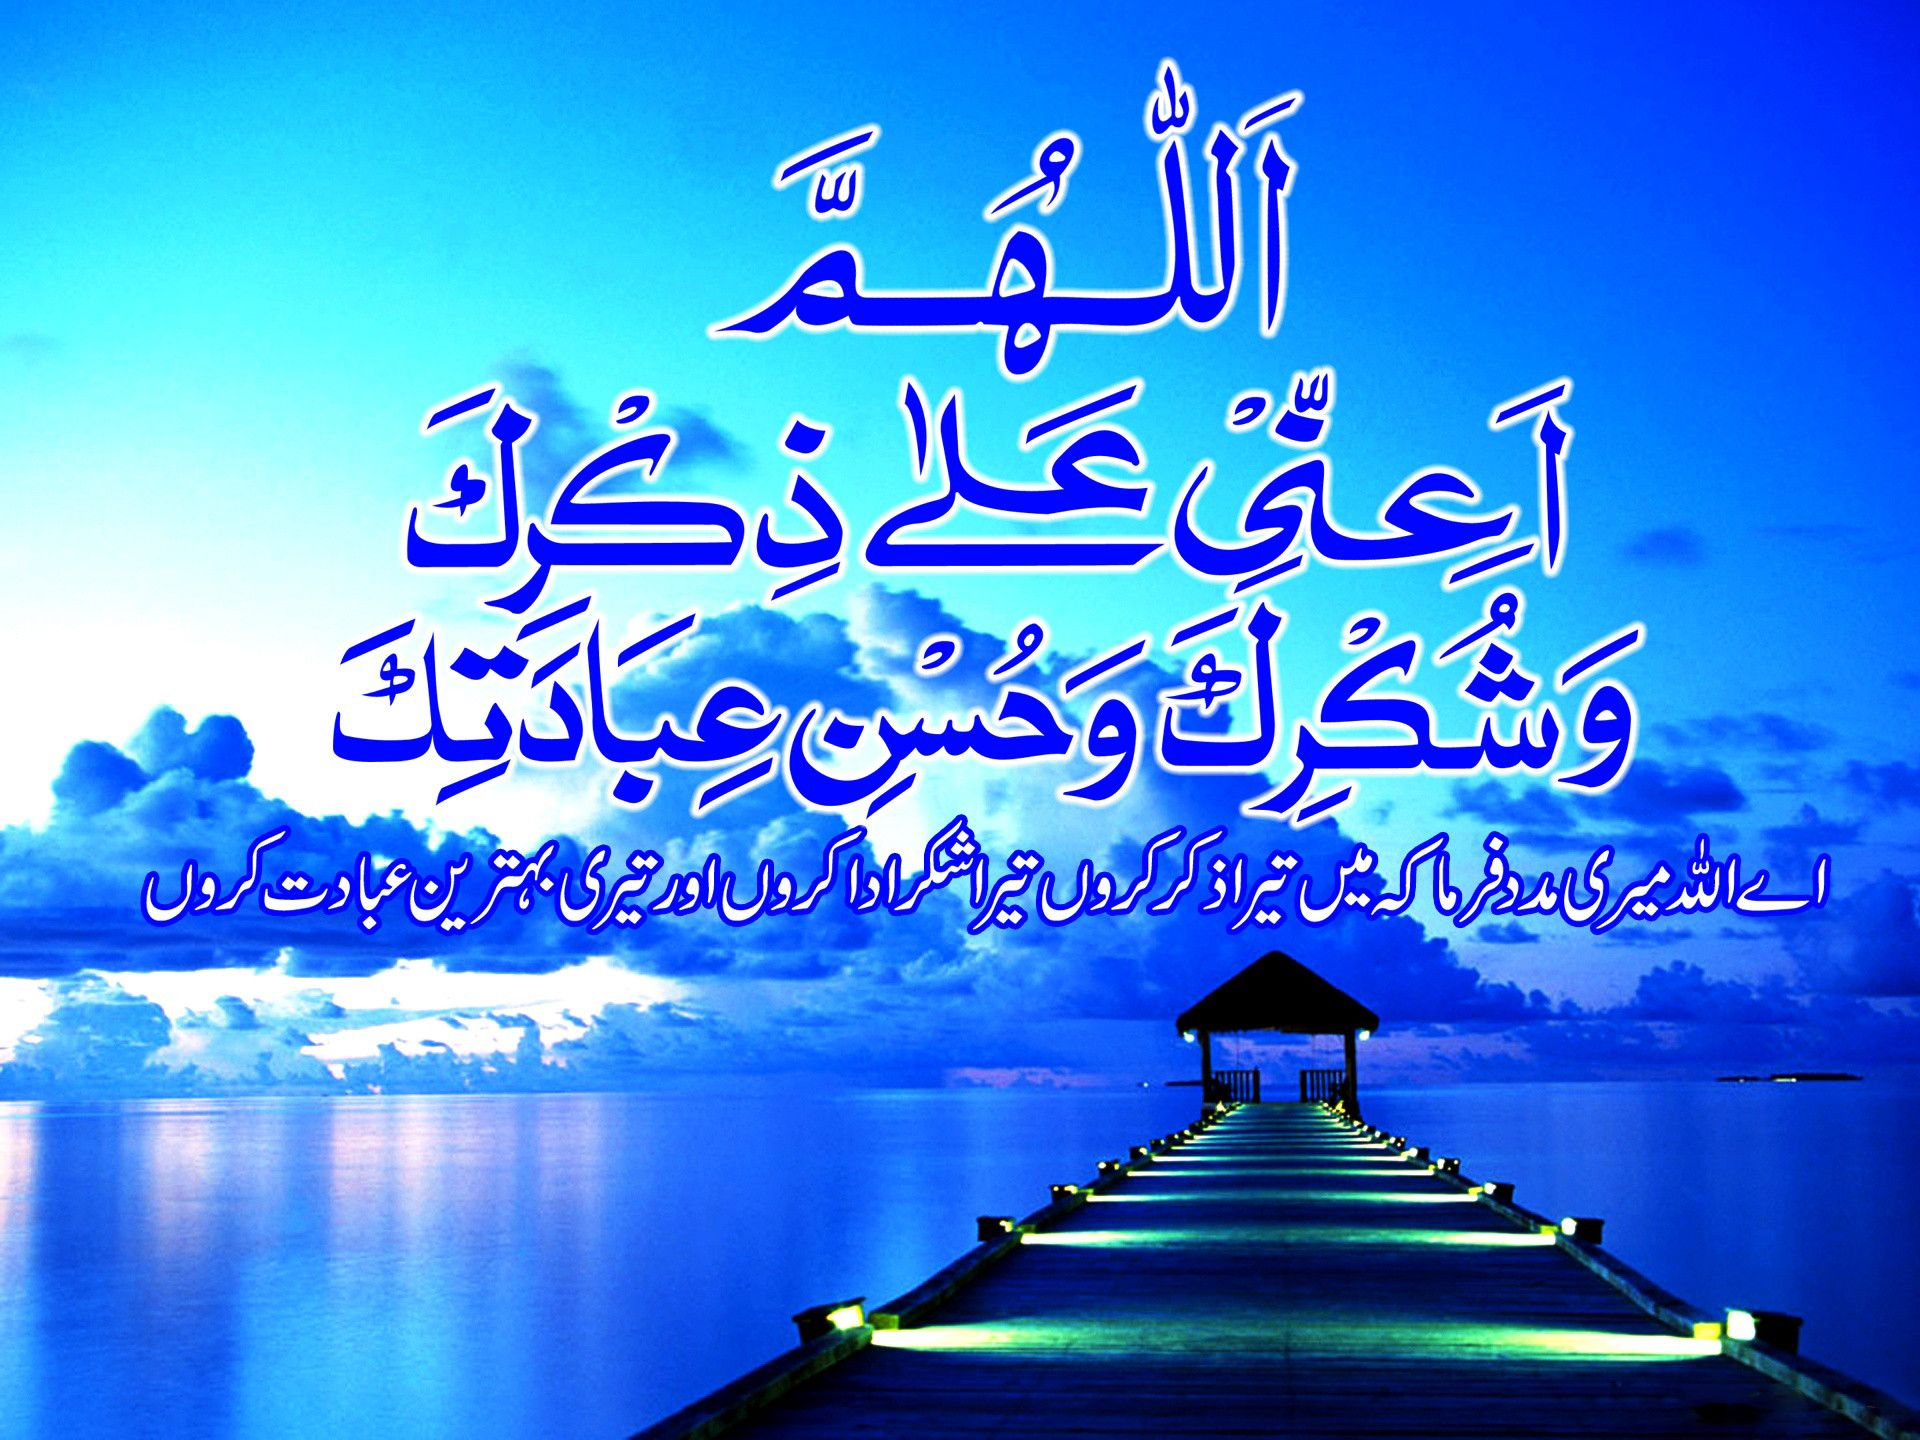 Download Wallpaper Islami